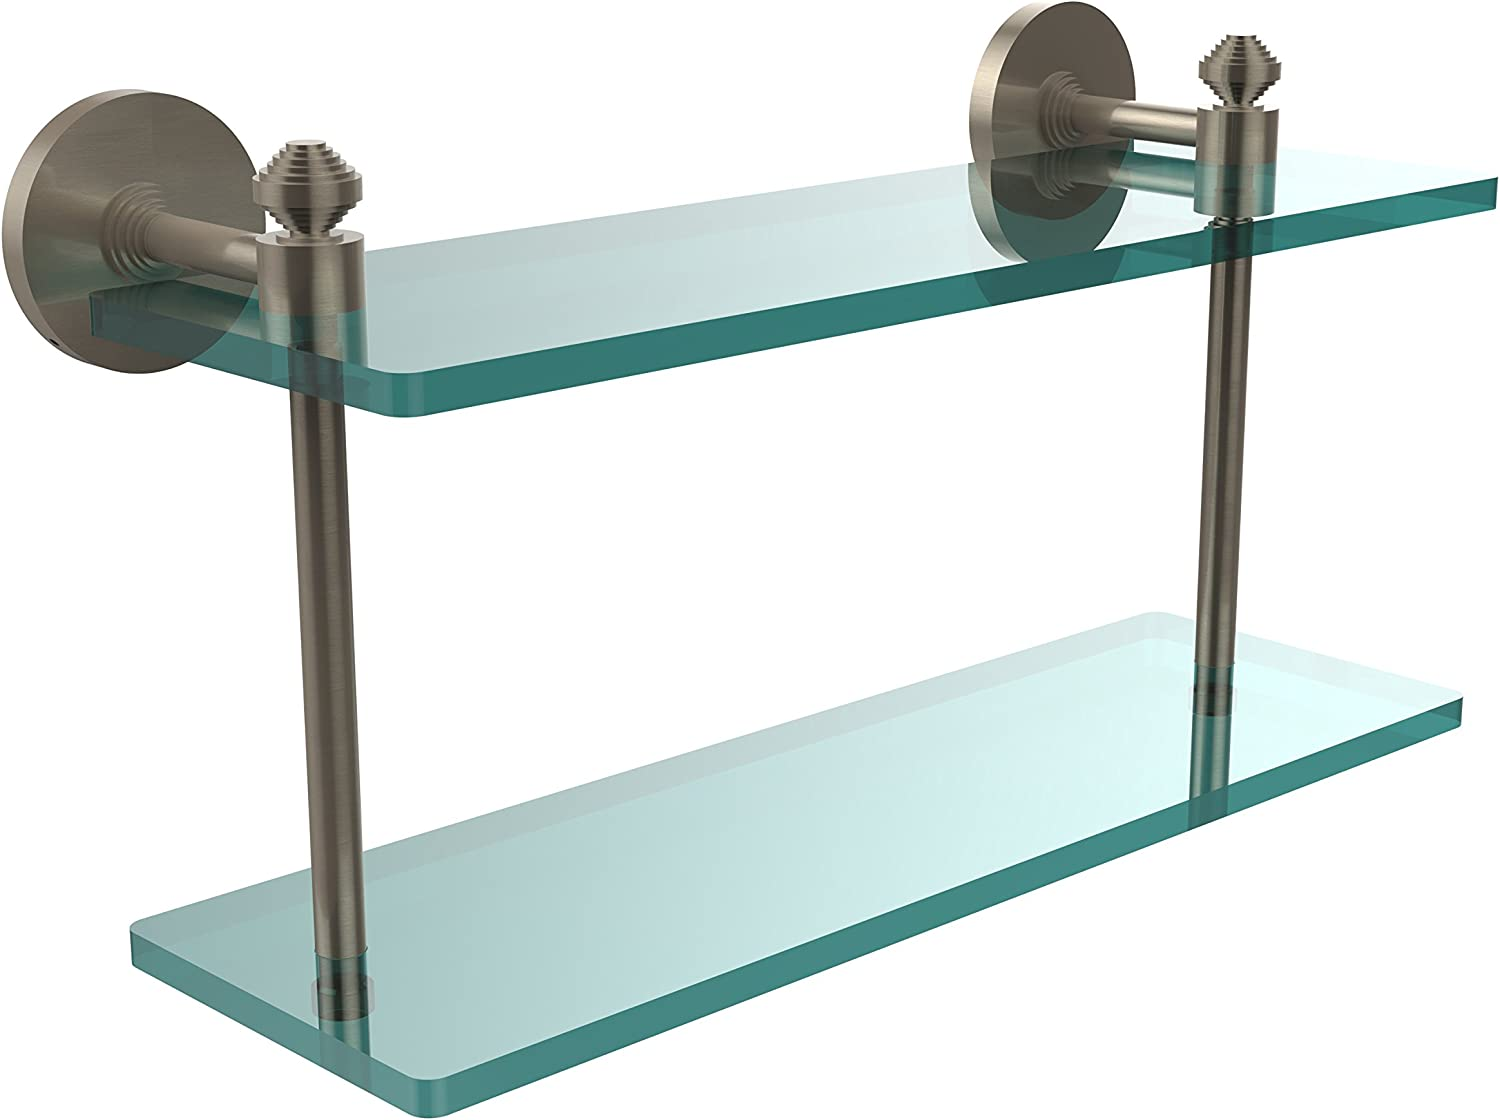 Allied Brass SB-2 16-PEW Southbeach Collection 16-Inch by 5-Inch Double Glass Shelf, Antique Pewter